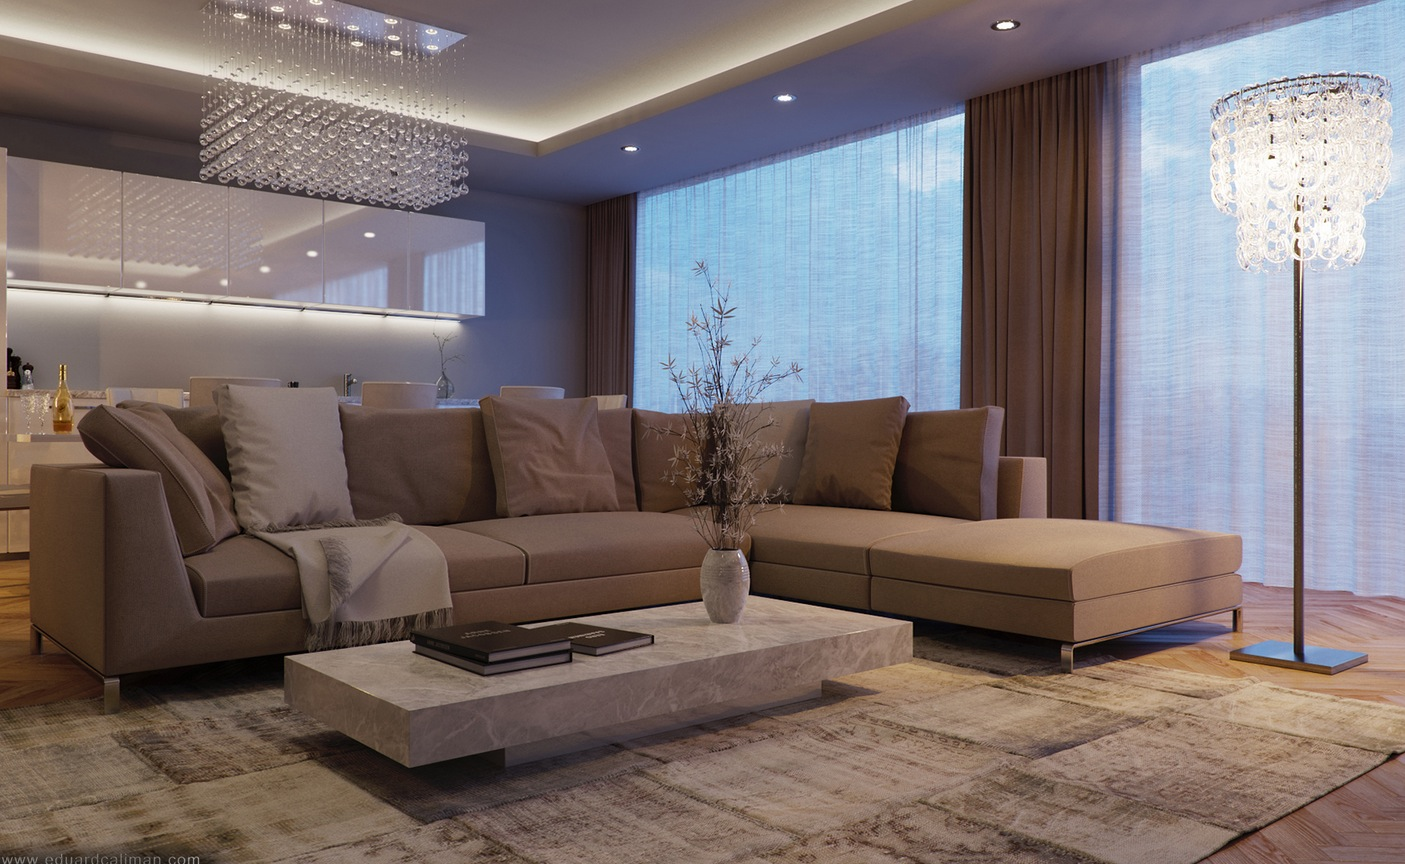 Taupe sofa interior design ideas Taupe room ideas